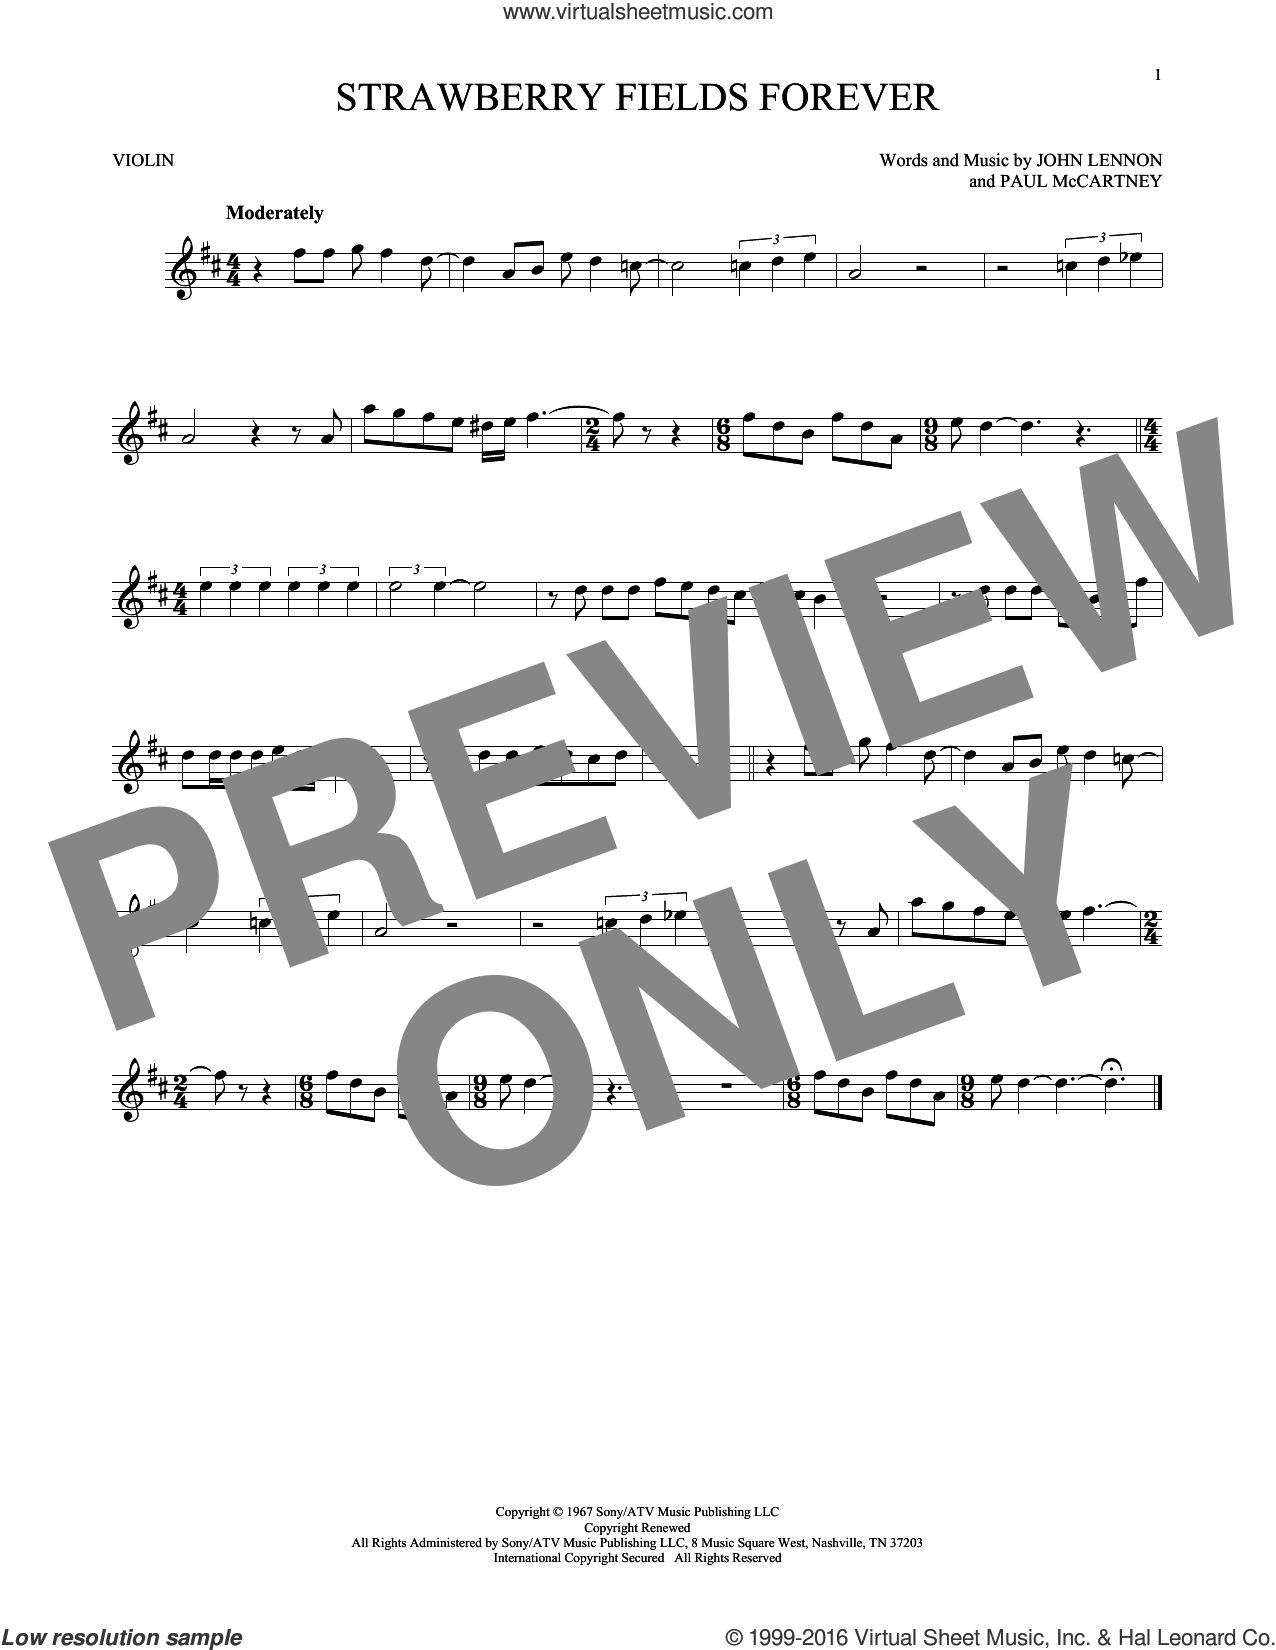 Strawberry Fields Forever sheet music for violin solo by The Beatles, John Lennon and Paul McCartney, intermediate skill level